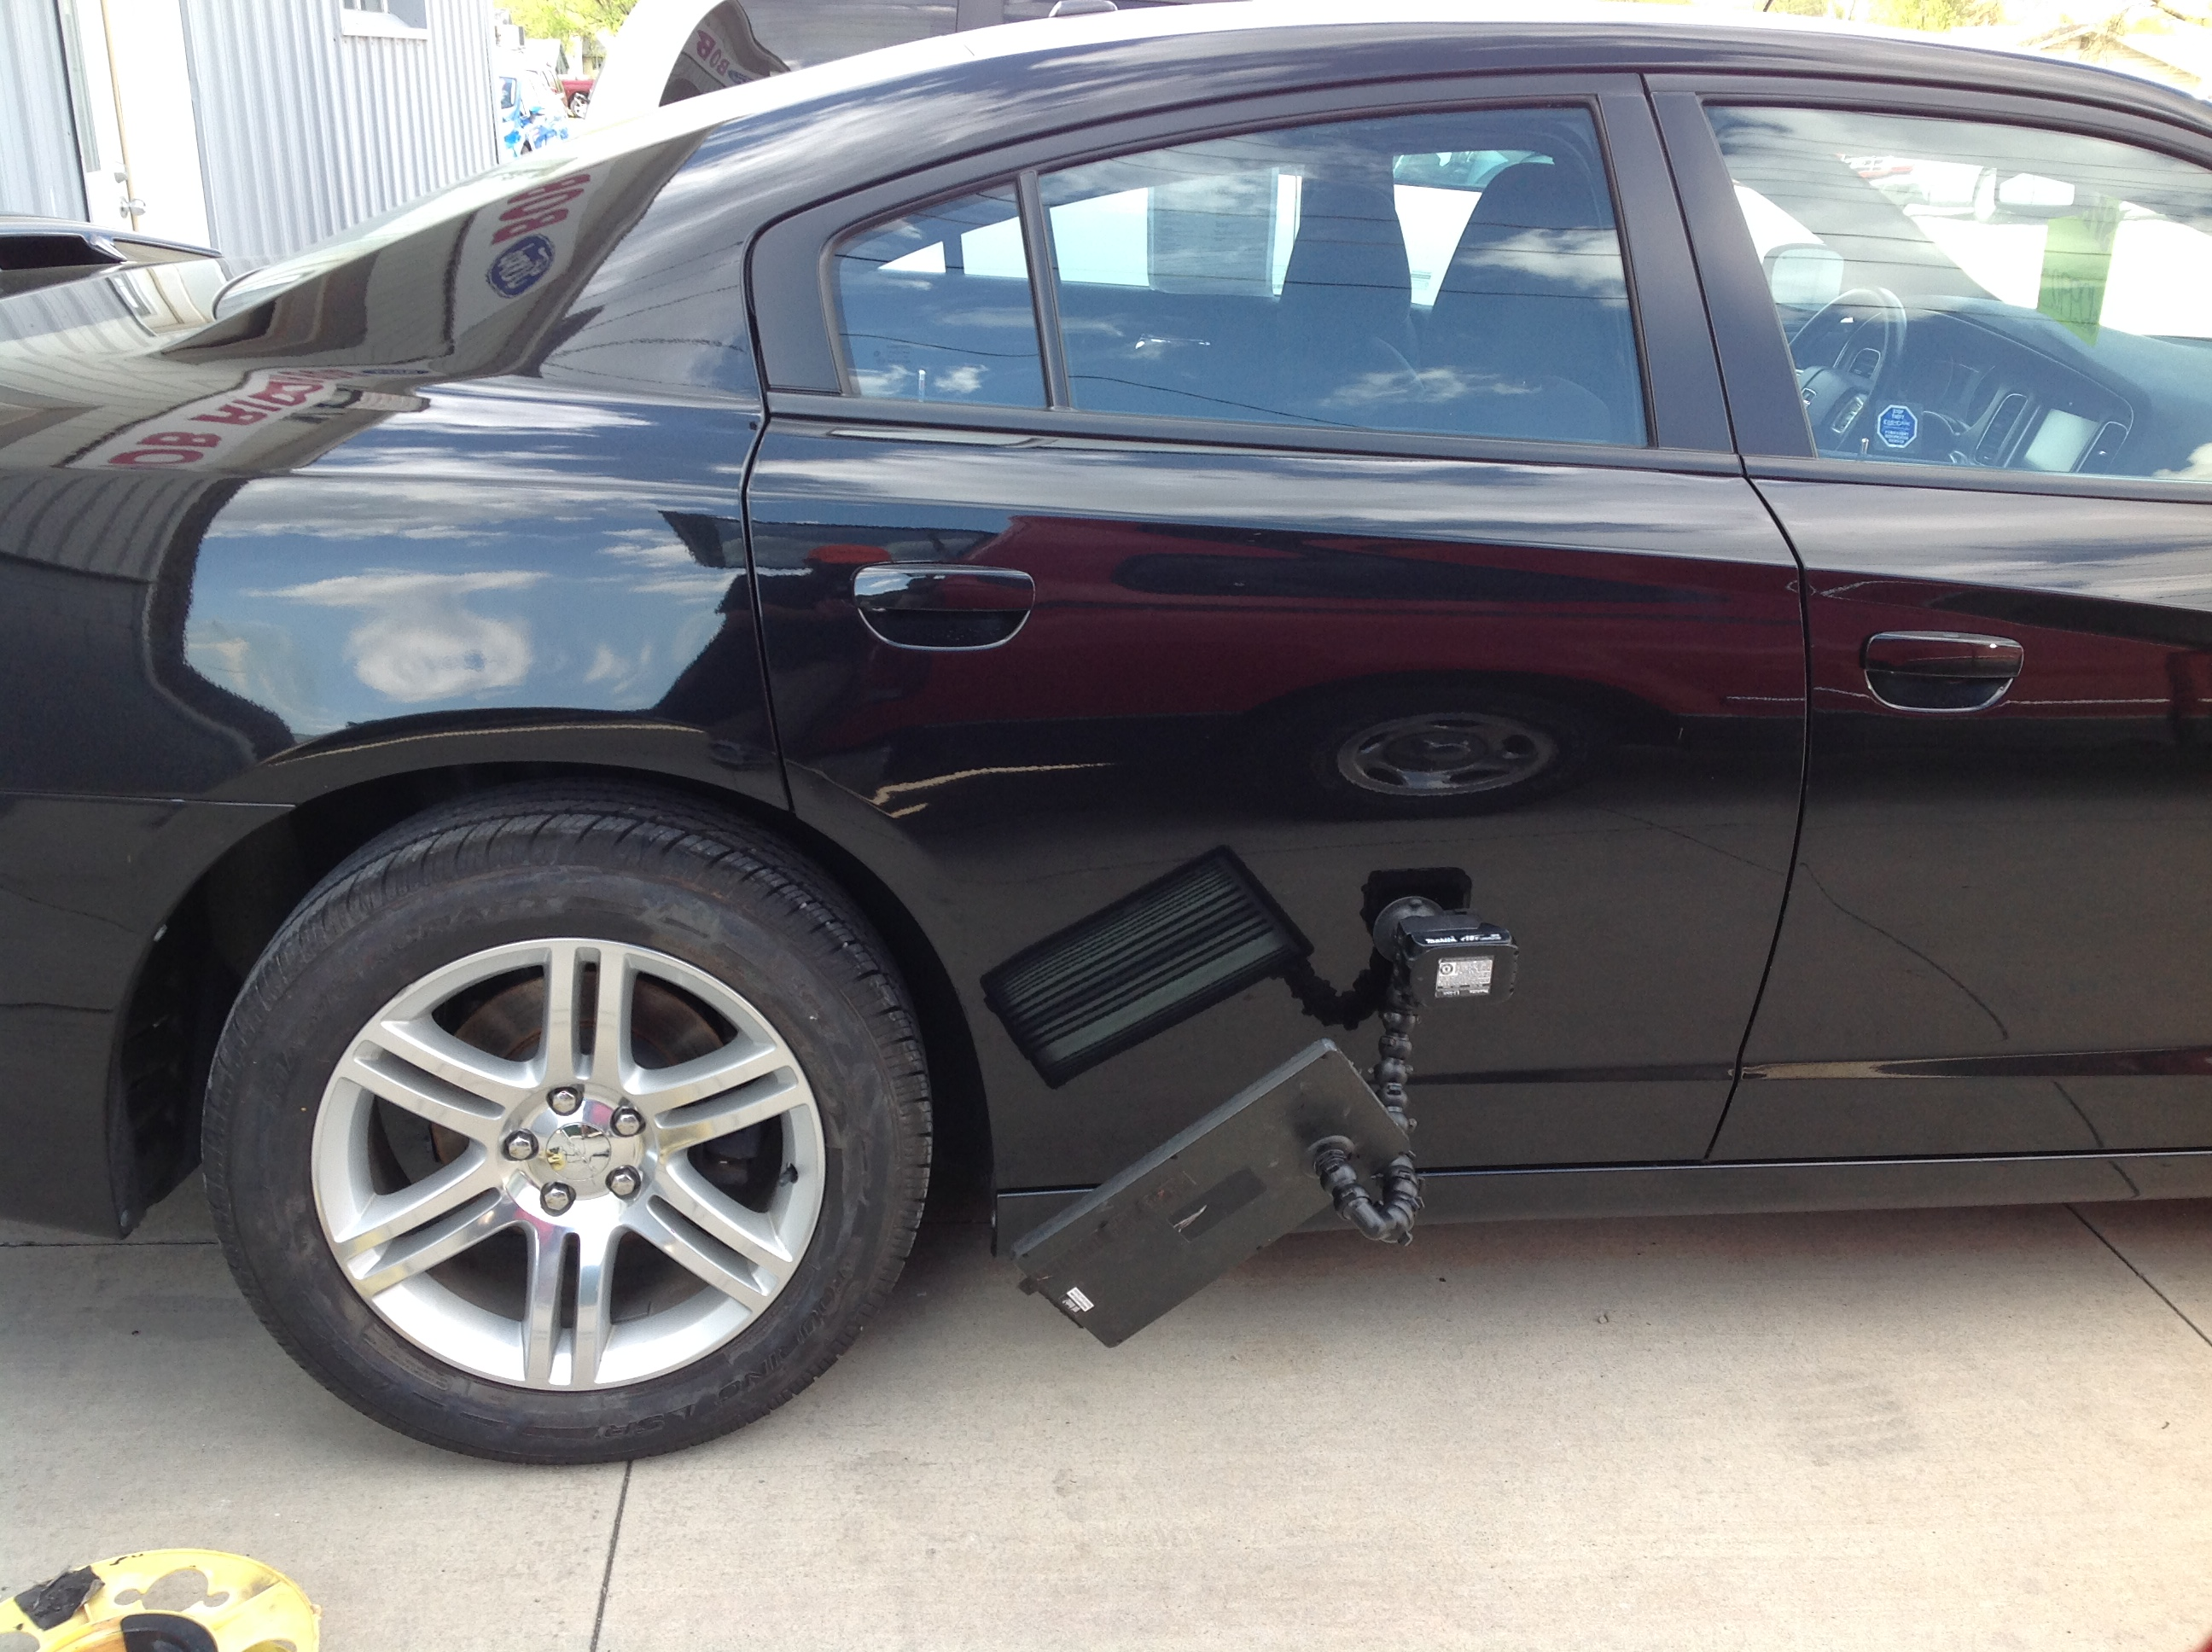 2011 Dodge Charger Passenger Rear Door Dent Removal, Springfield IL, Taylorville IL, Decatur IL, Mobile Dent Repair http://217dent.com